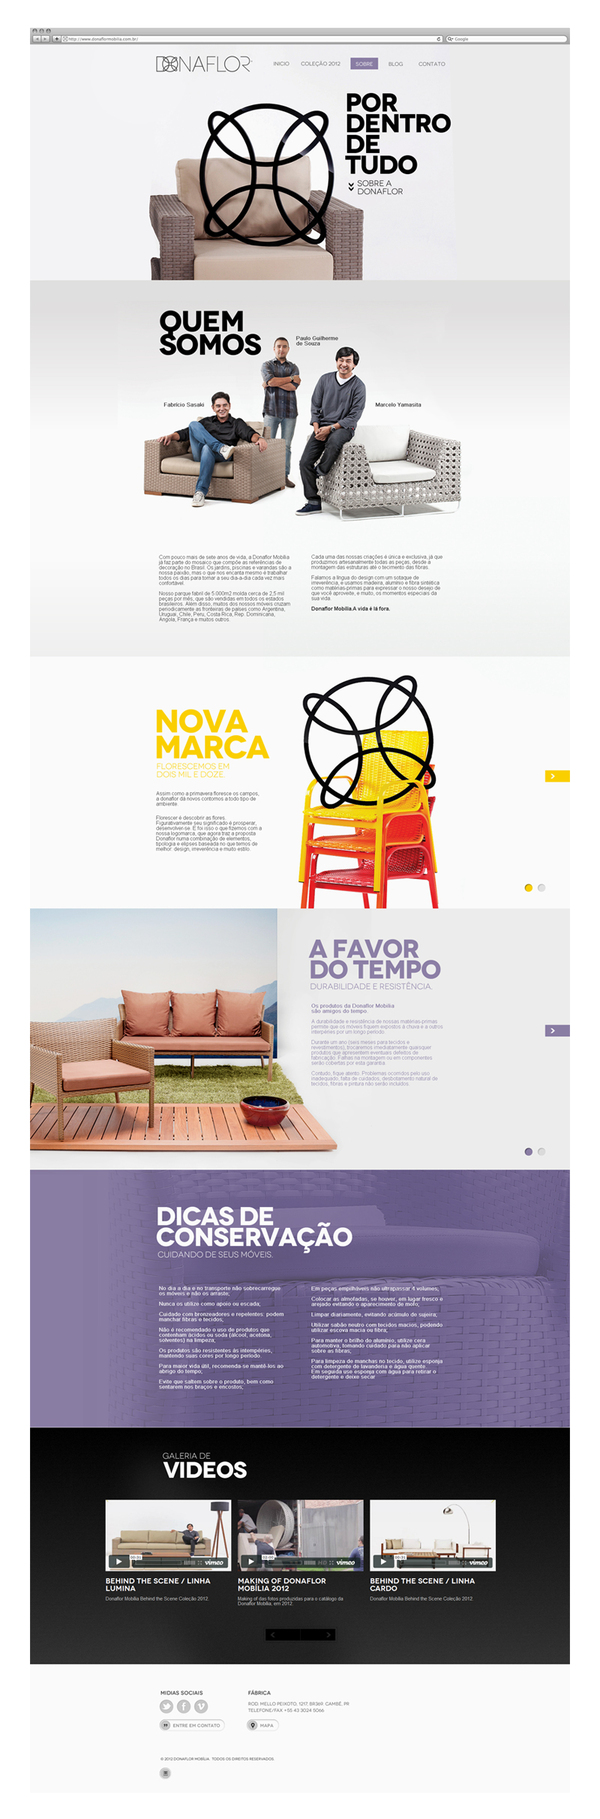 Twenty Twelve | Donaflor by Pianofuzz , via Behance